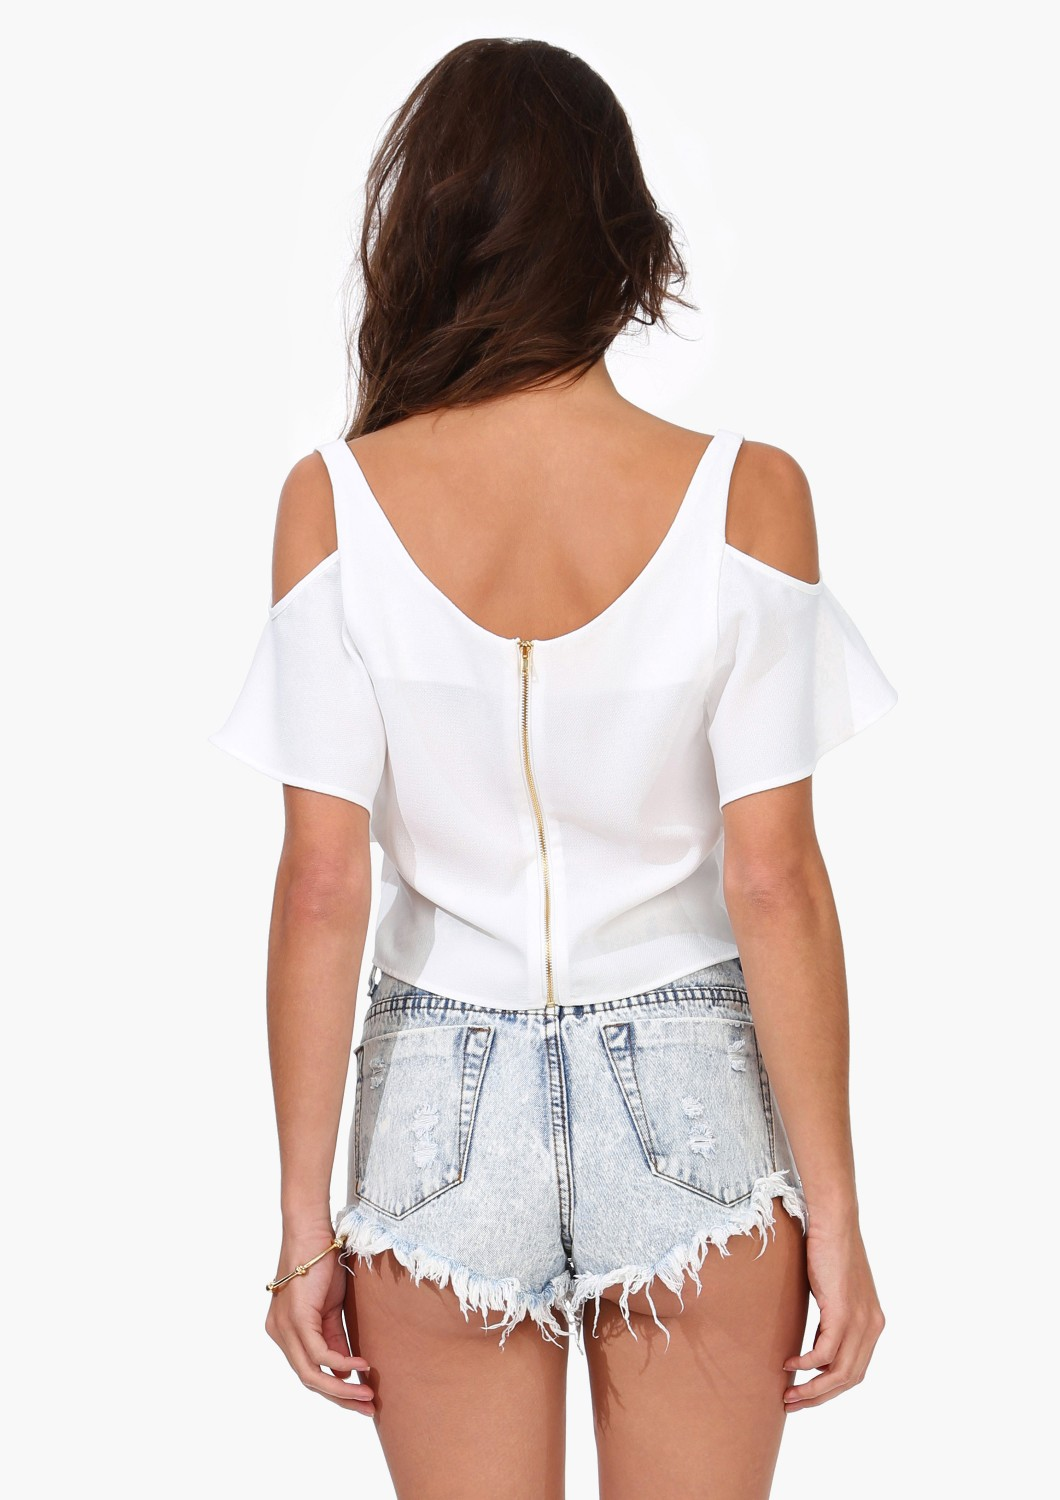 White Off the Shoulder Ruffle Crop Vest - Sheinside.com